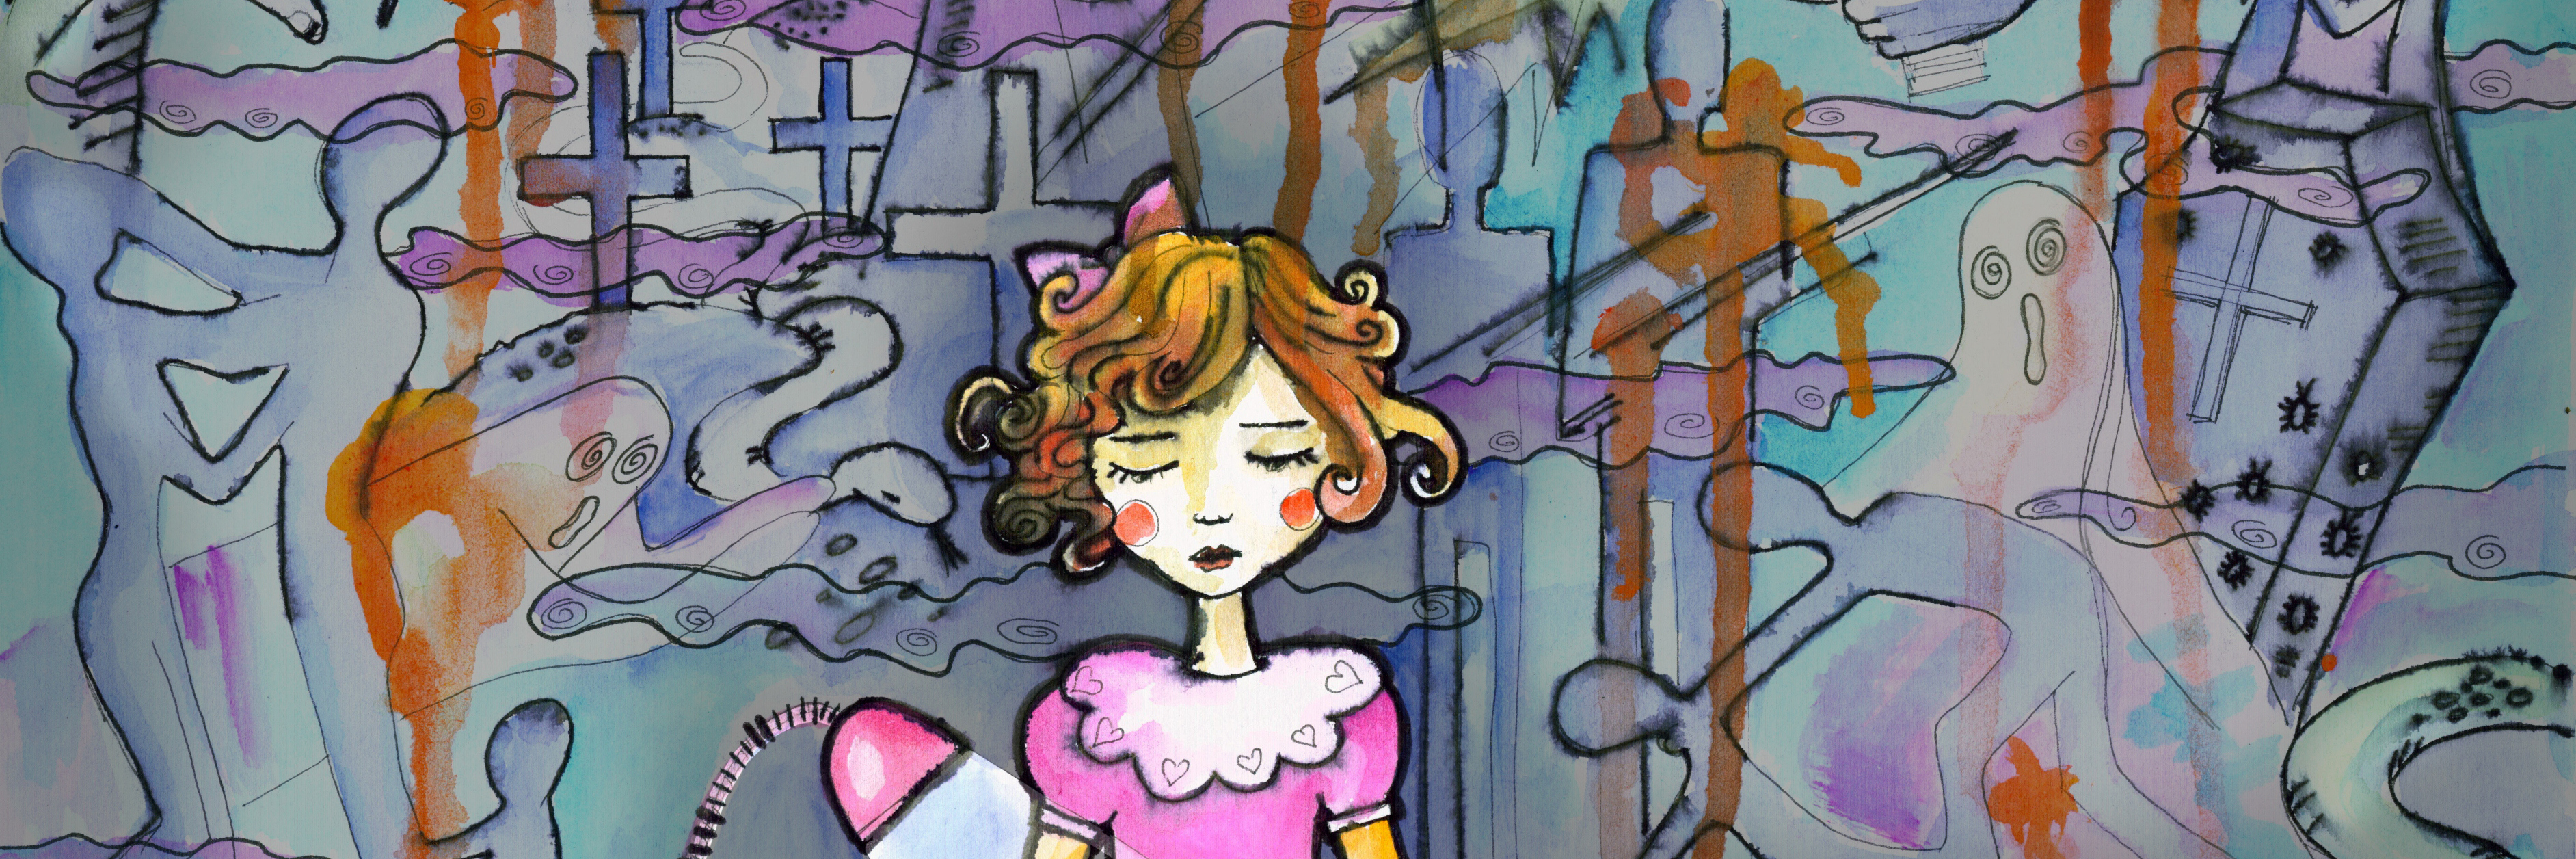 Little girl by her working table drawing sunshine. Horror surrounding. Watercolor drawing